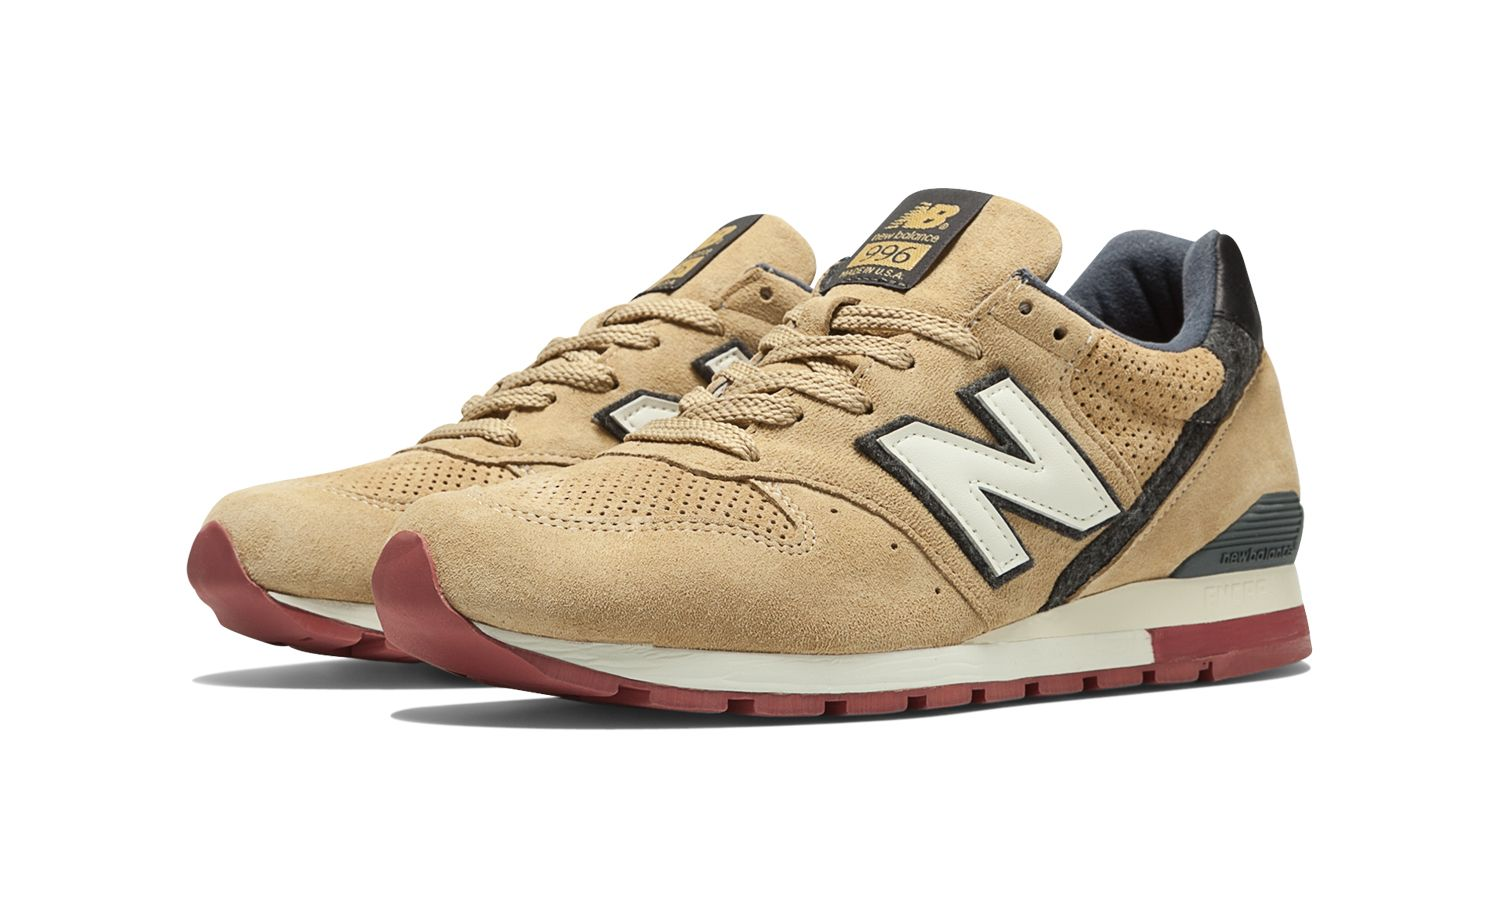 New Balance 996 Distinct Made in the USA new balance x social status cm1600 winter in the hamptons